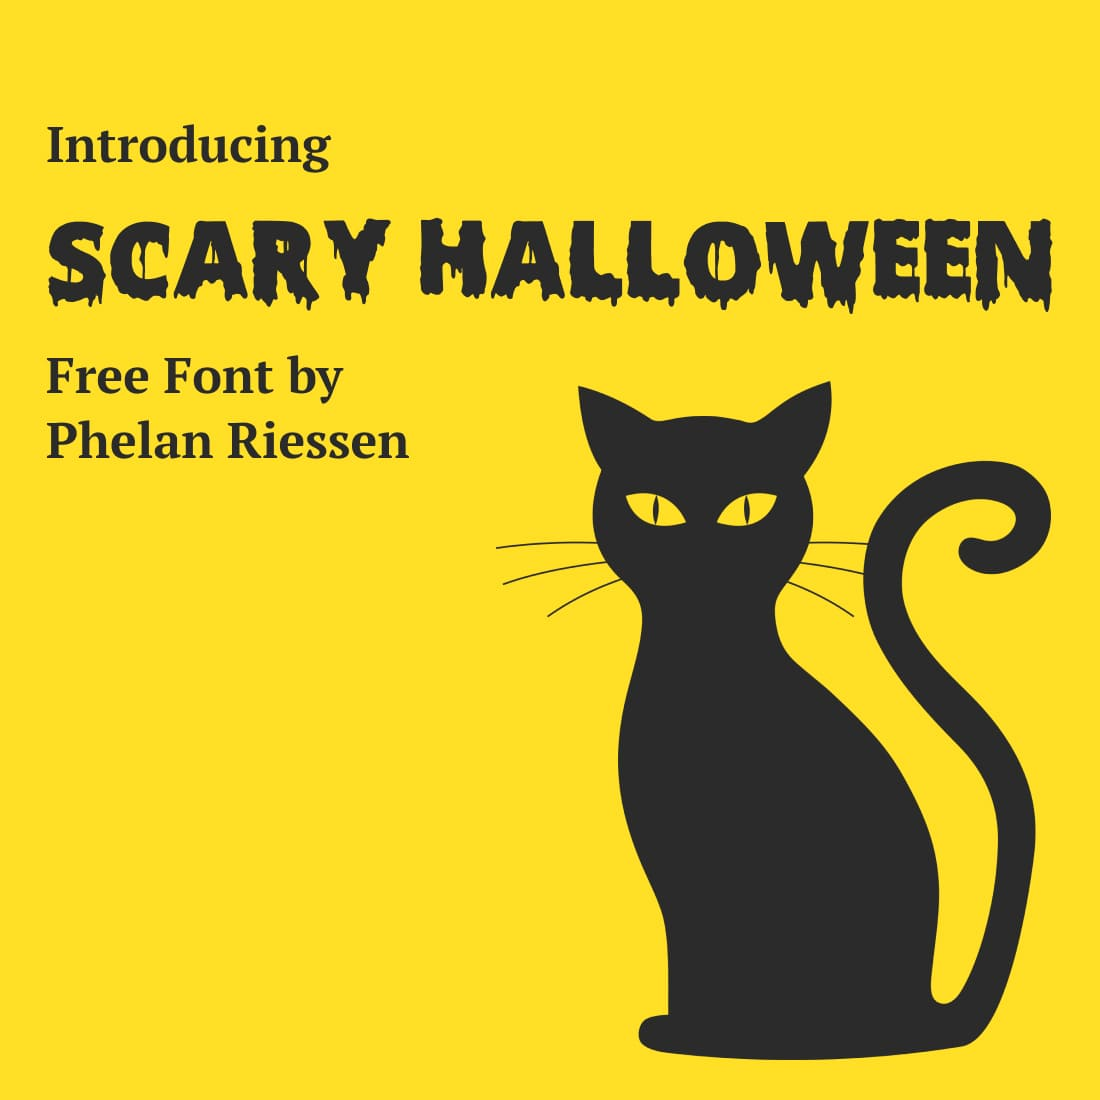 MasterBundles Scary Halloween font free Cover Image with Black Cat.